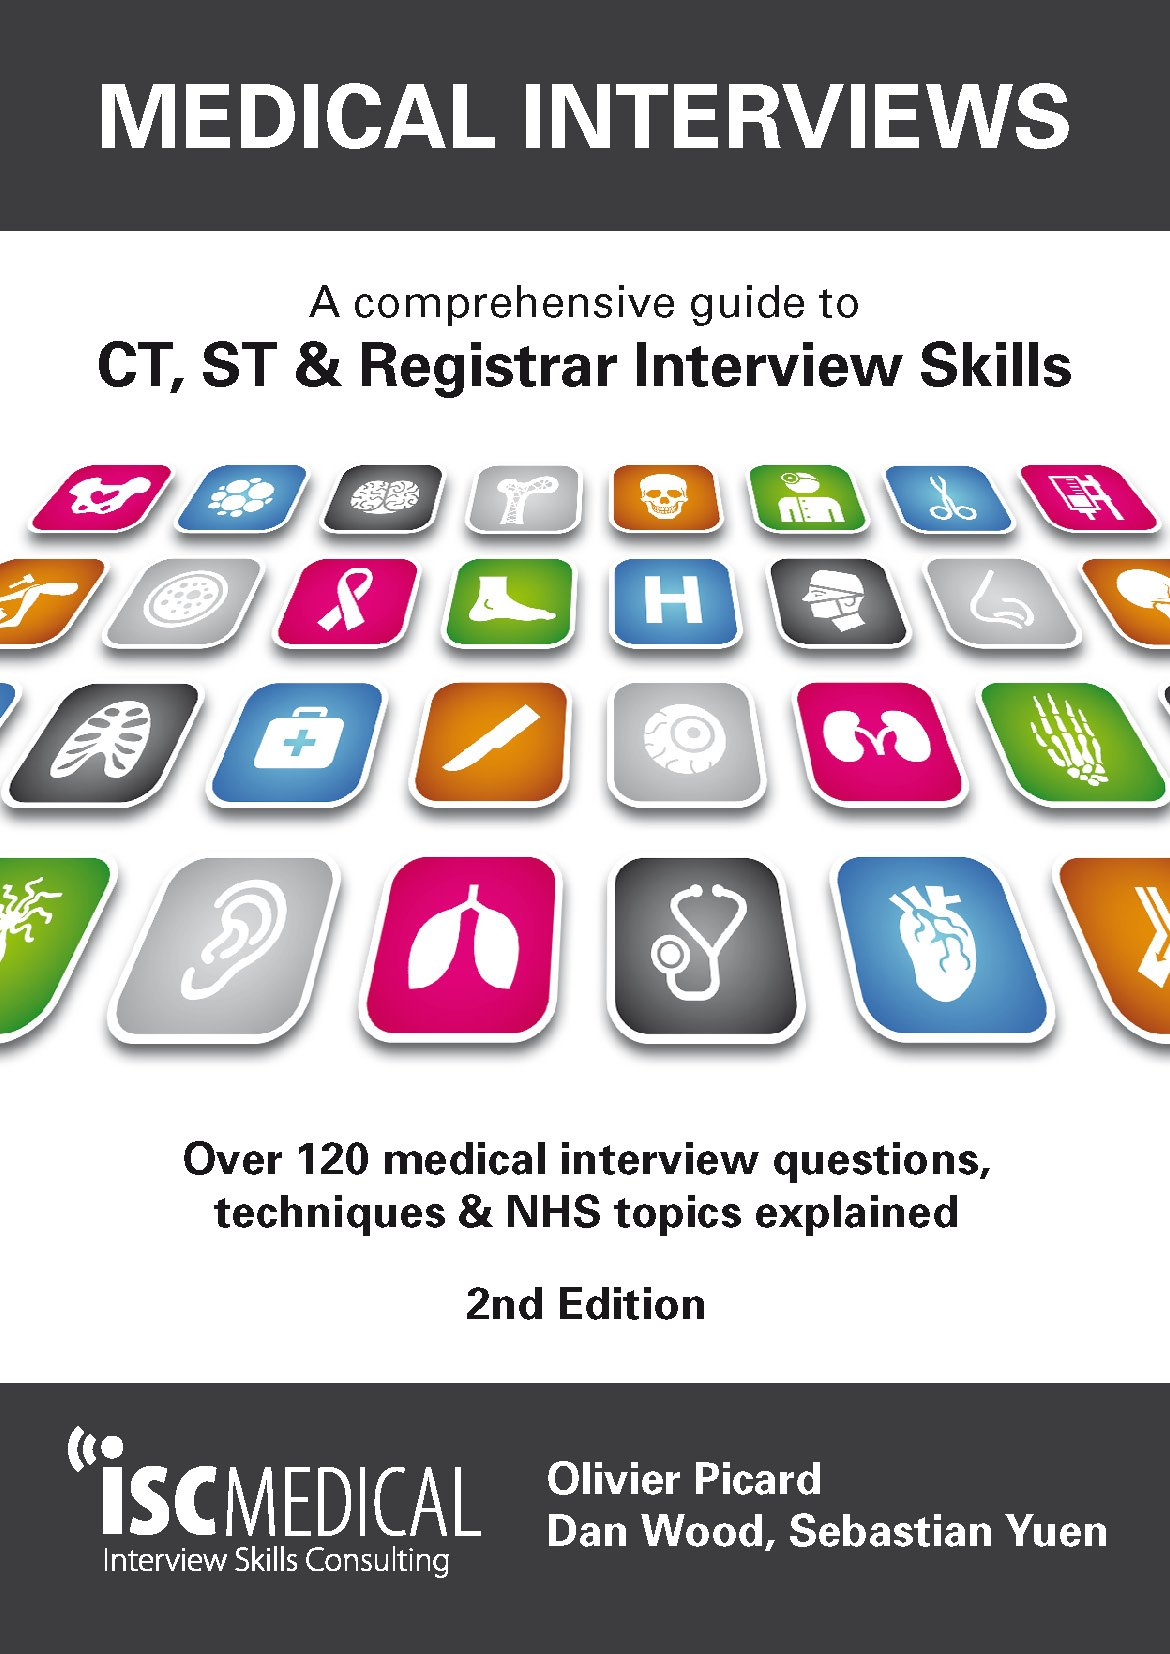 medical interviews 2nd edition a comprehensive guide to ct st medical interviews 2nd edition a comprehensive guide to ct st registrar interview skills over 120 medical interview questions techniques and nhs